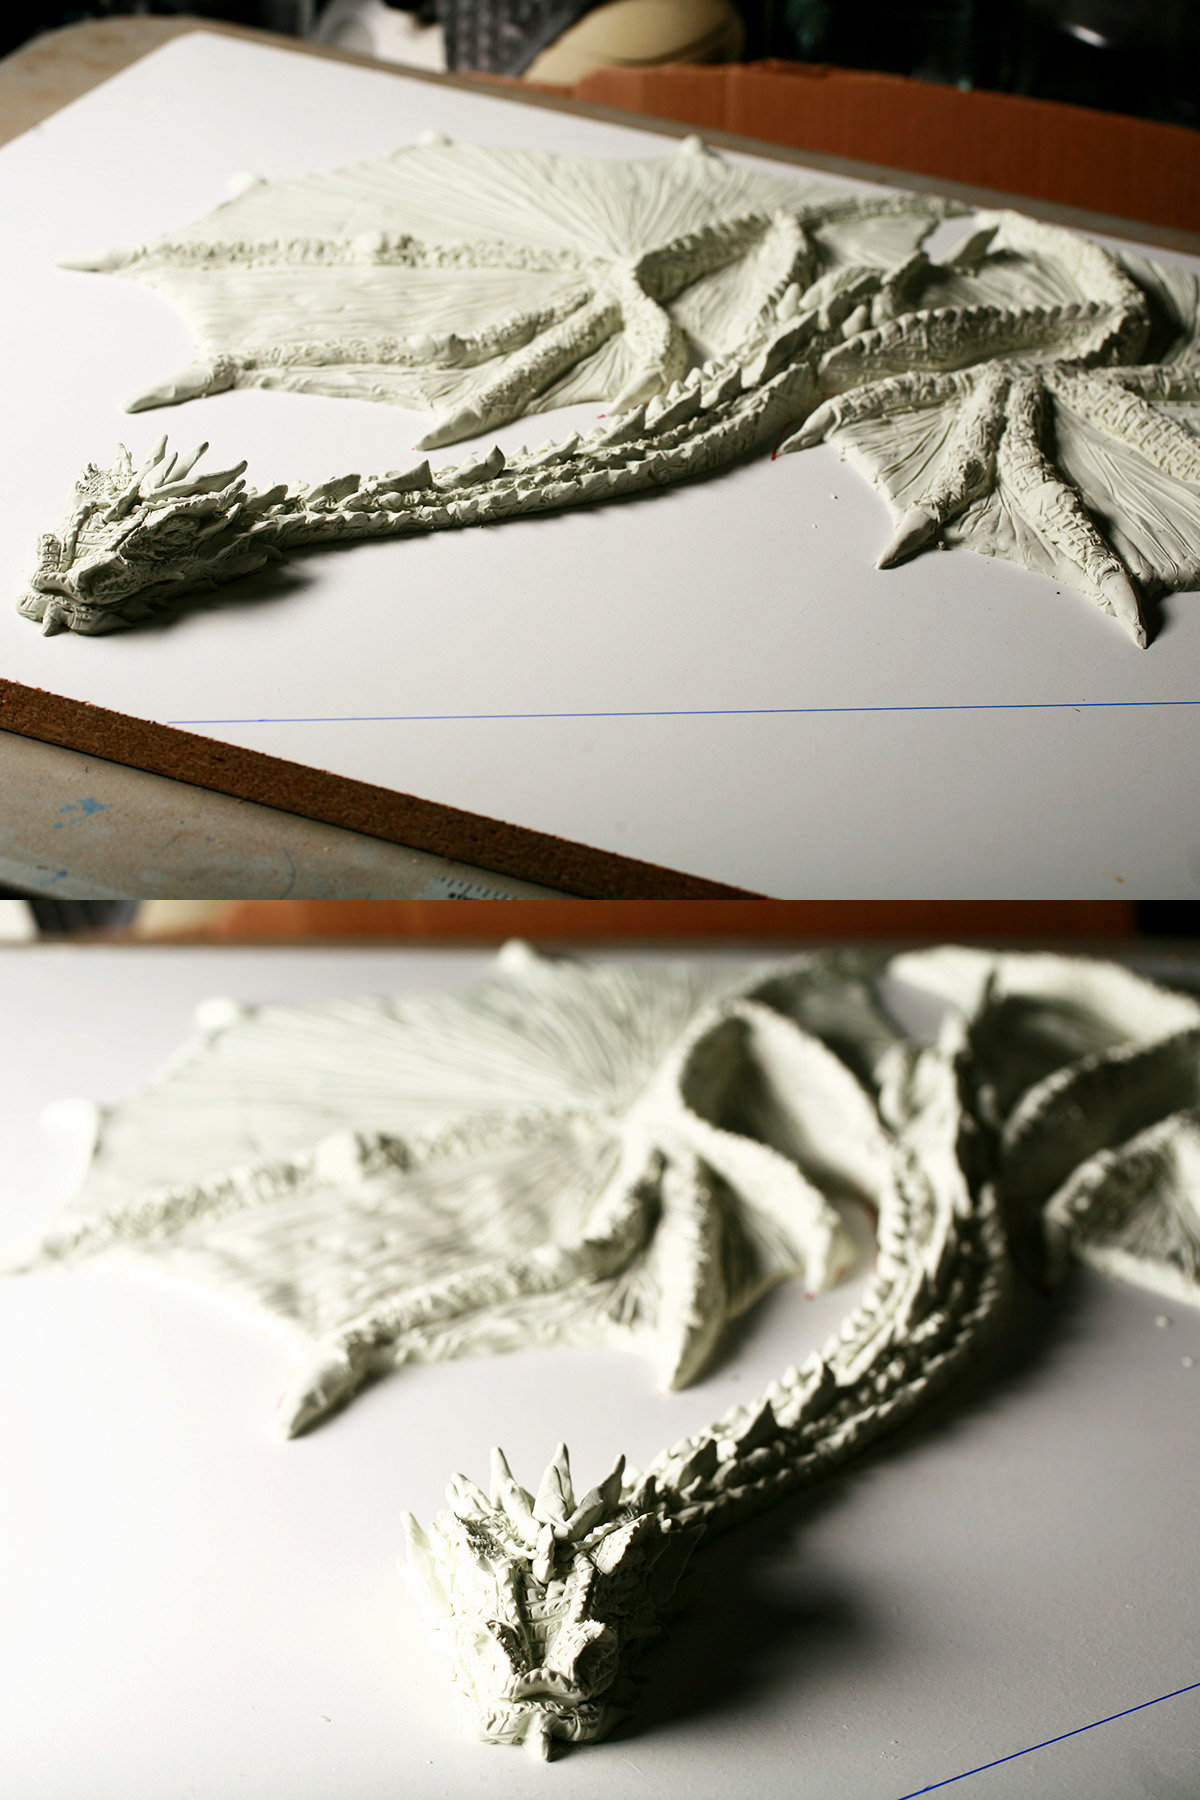 A two part compilation imahe showing different views of the clay sculpted Smaug dragon's full body.